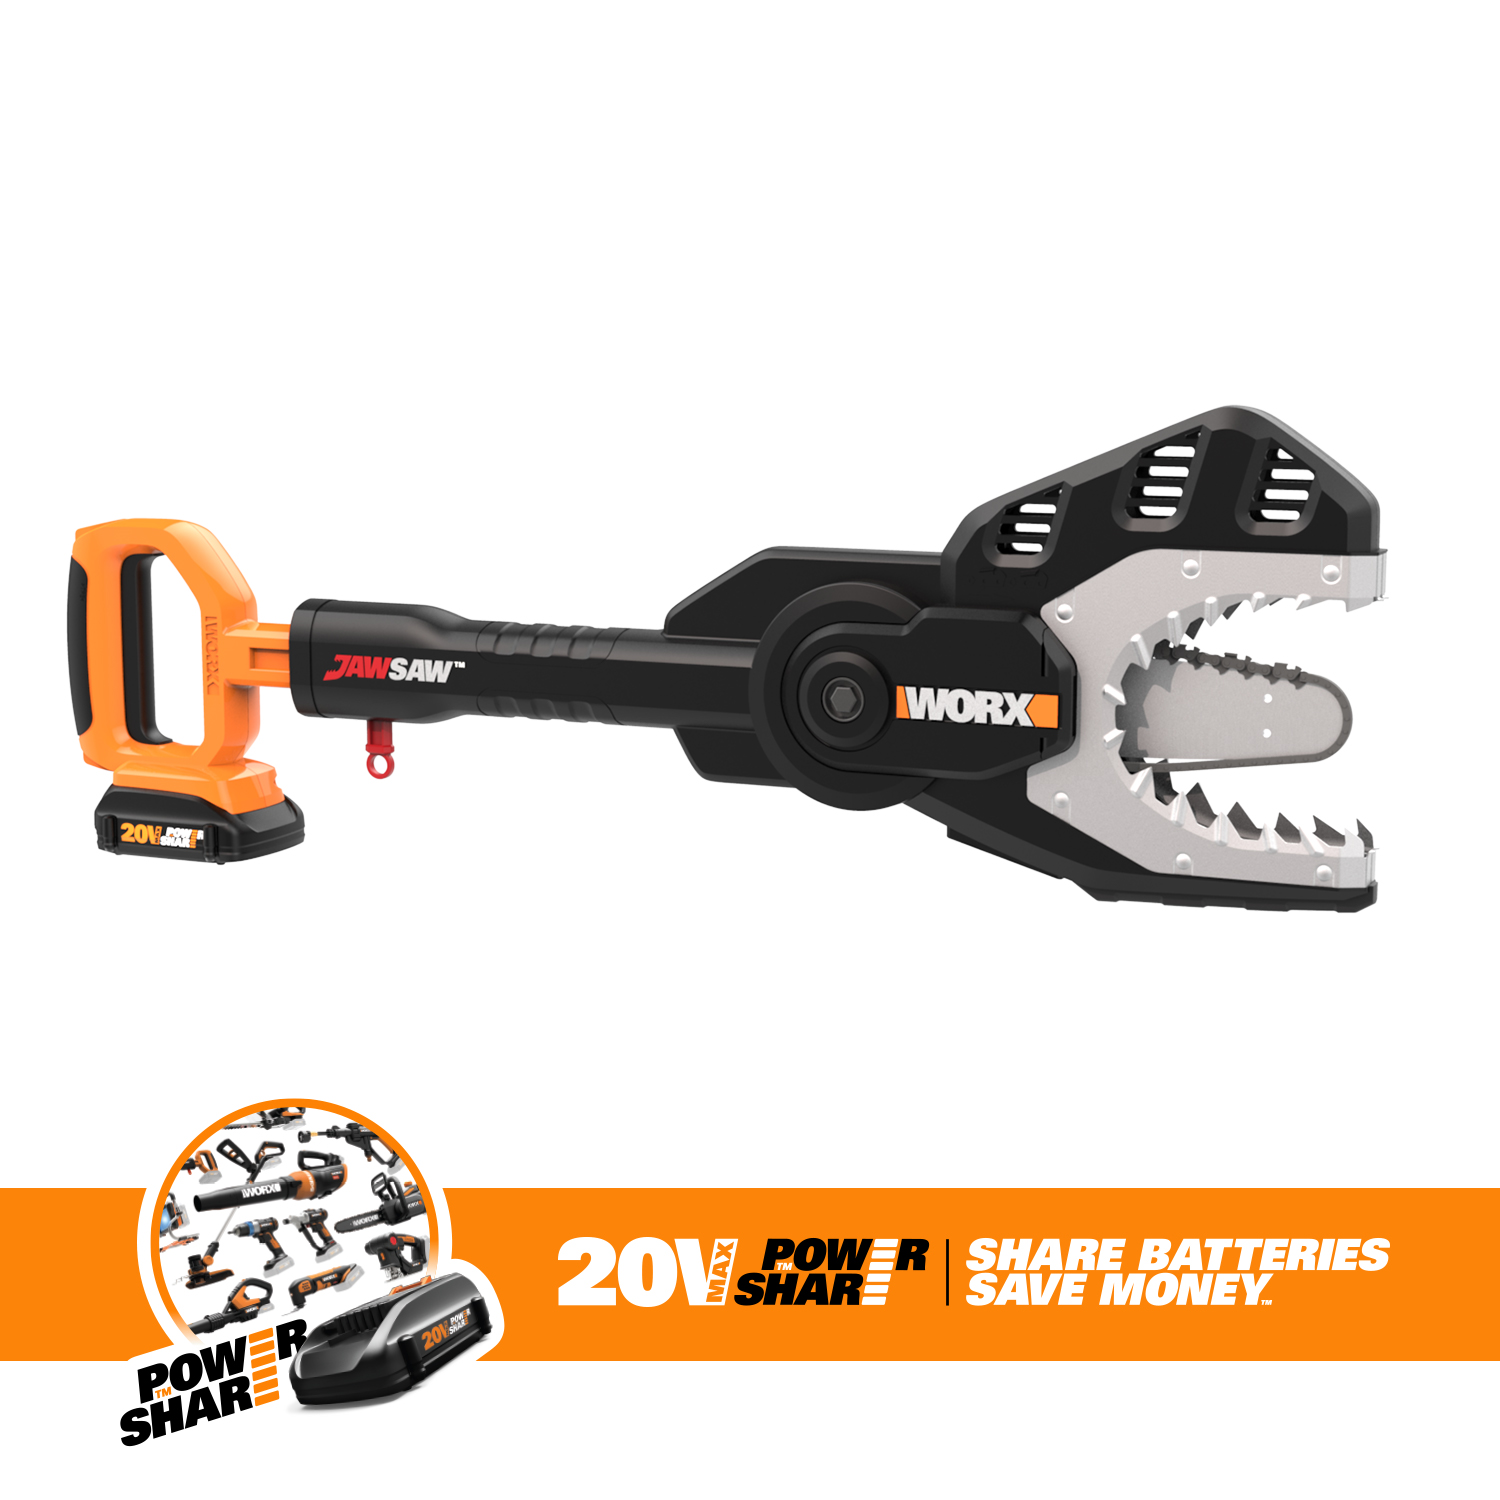 Worx WG320 6 in. 20V MaxLithium Cordless JawSaw Chainsaw by Positec Technology